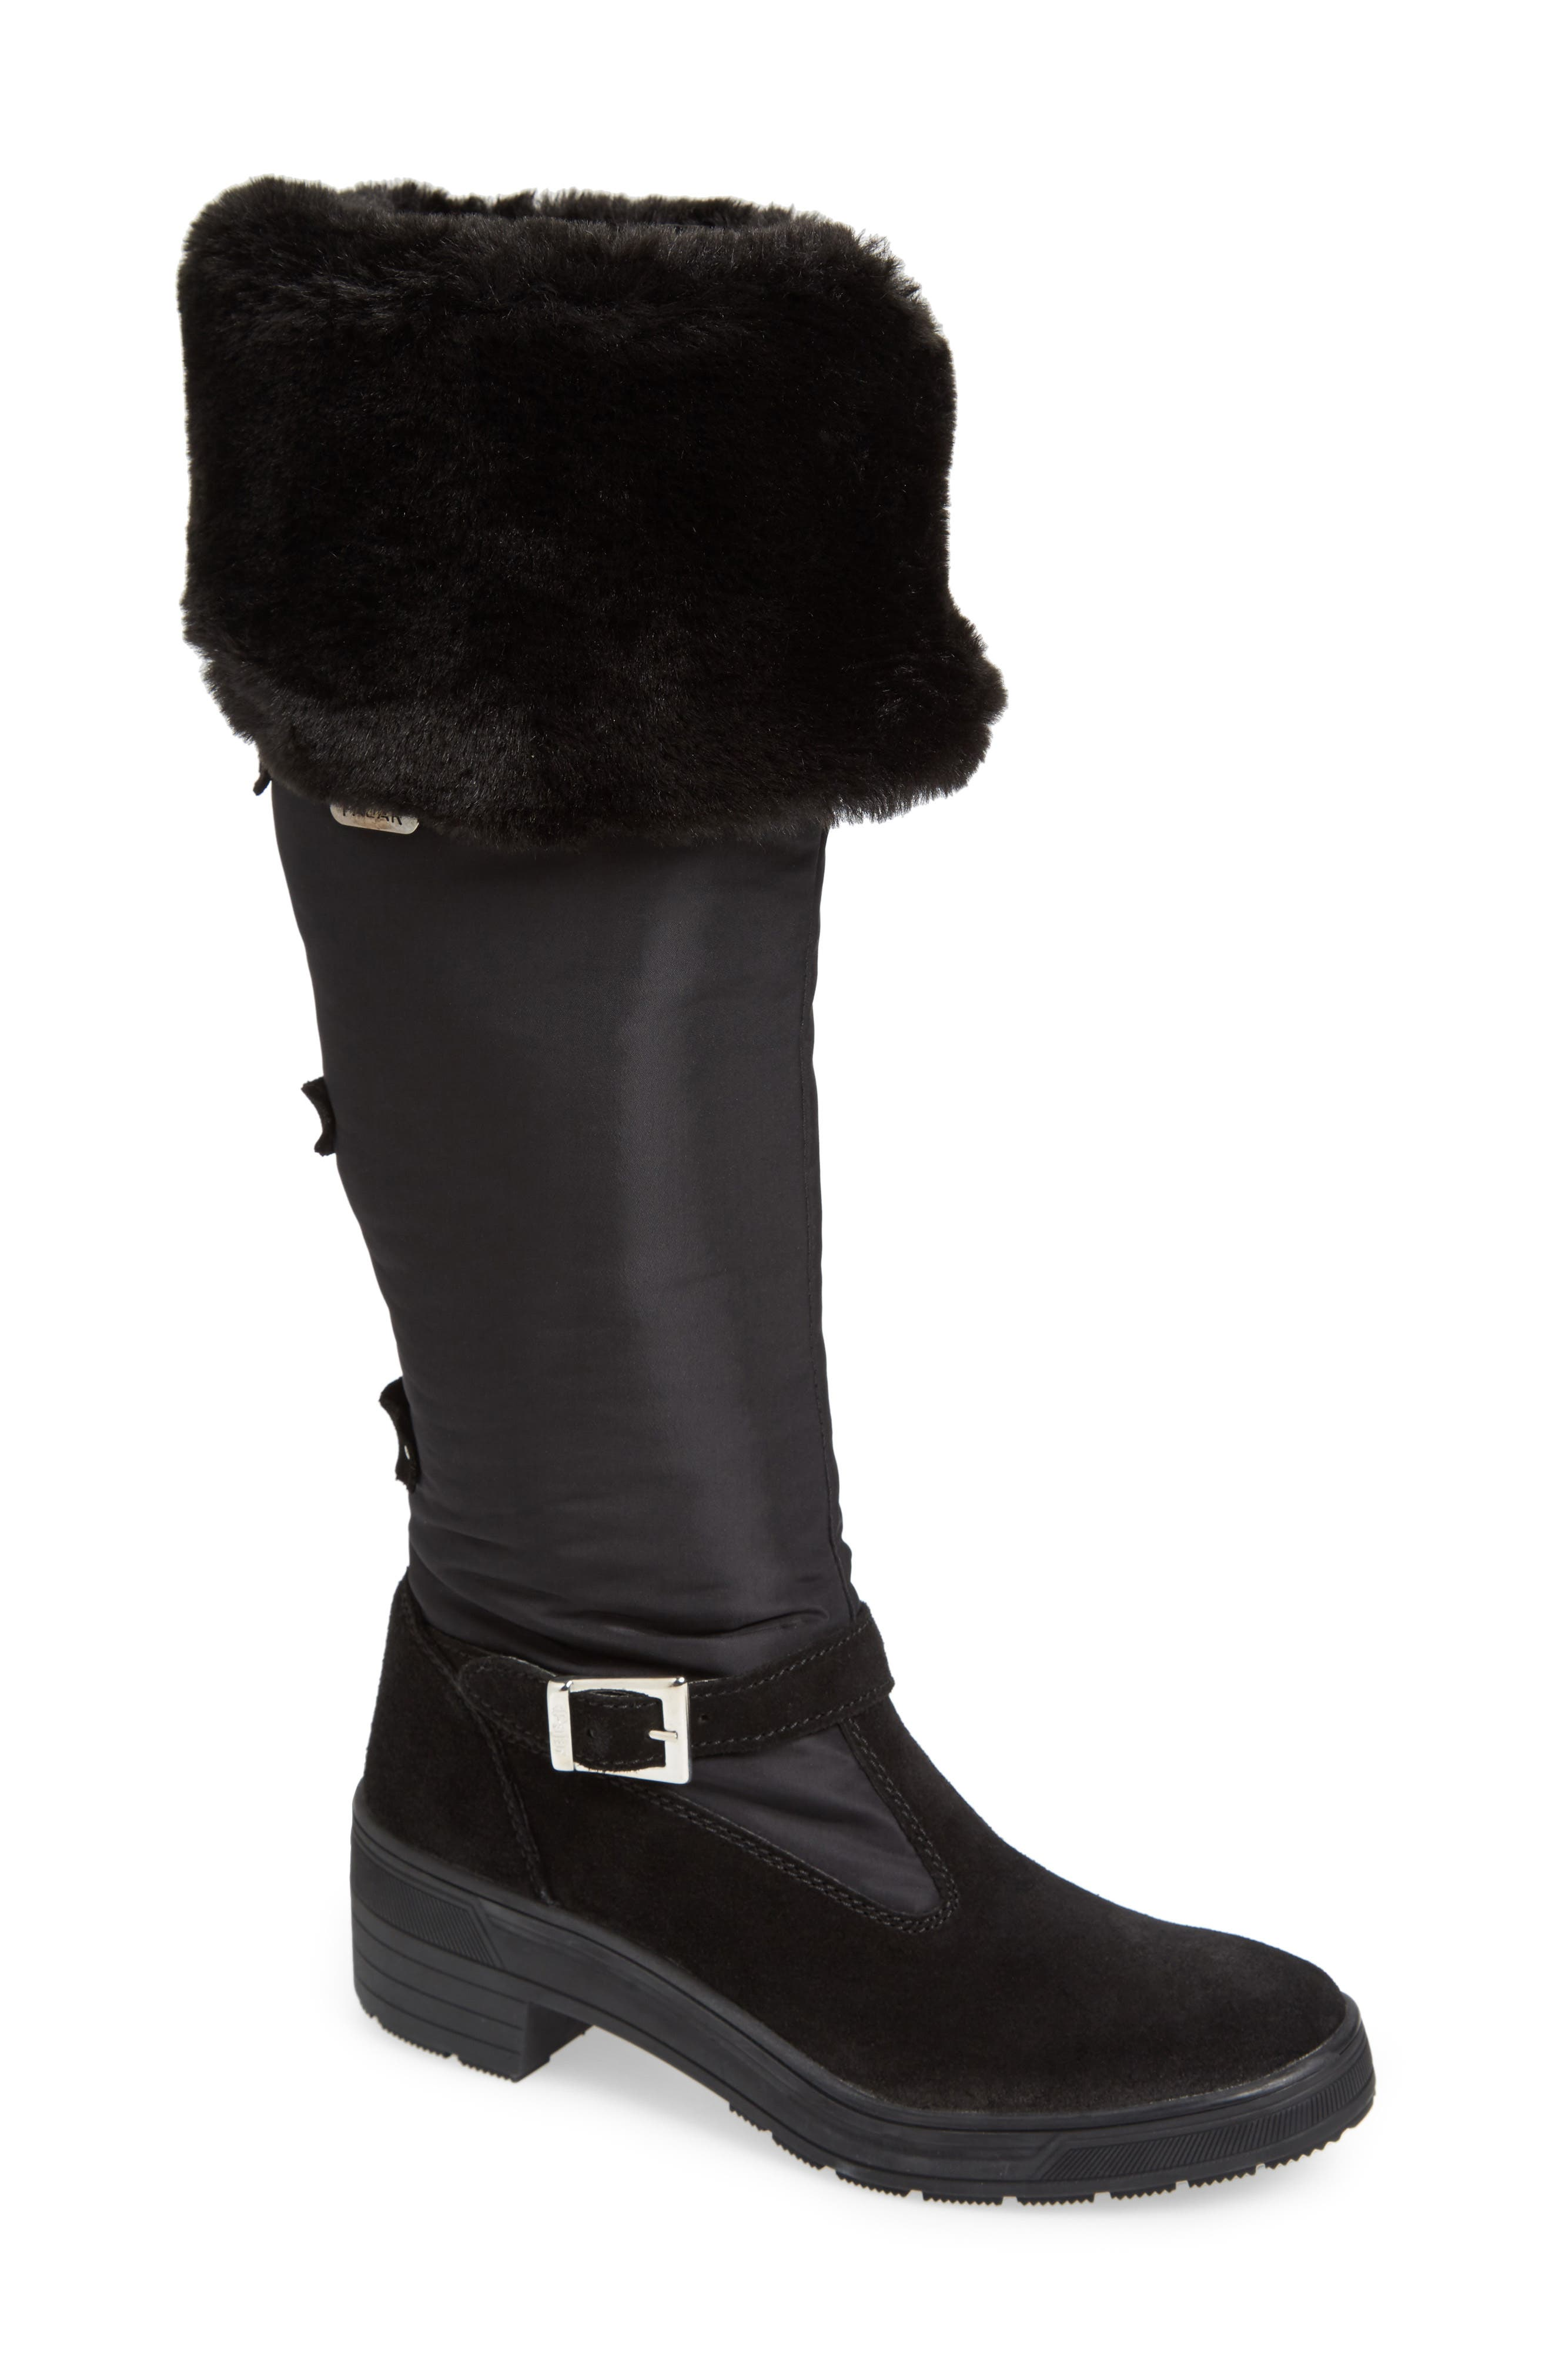 Norah Waterproof Boot with Faux Fur Cuff,                         Main,                         color,